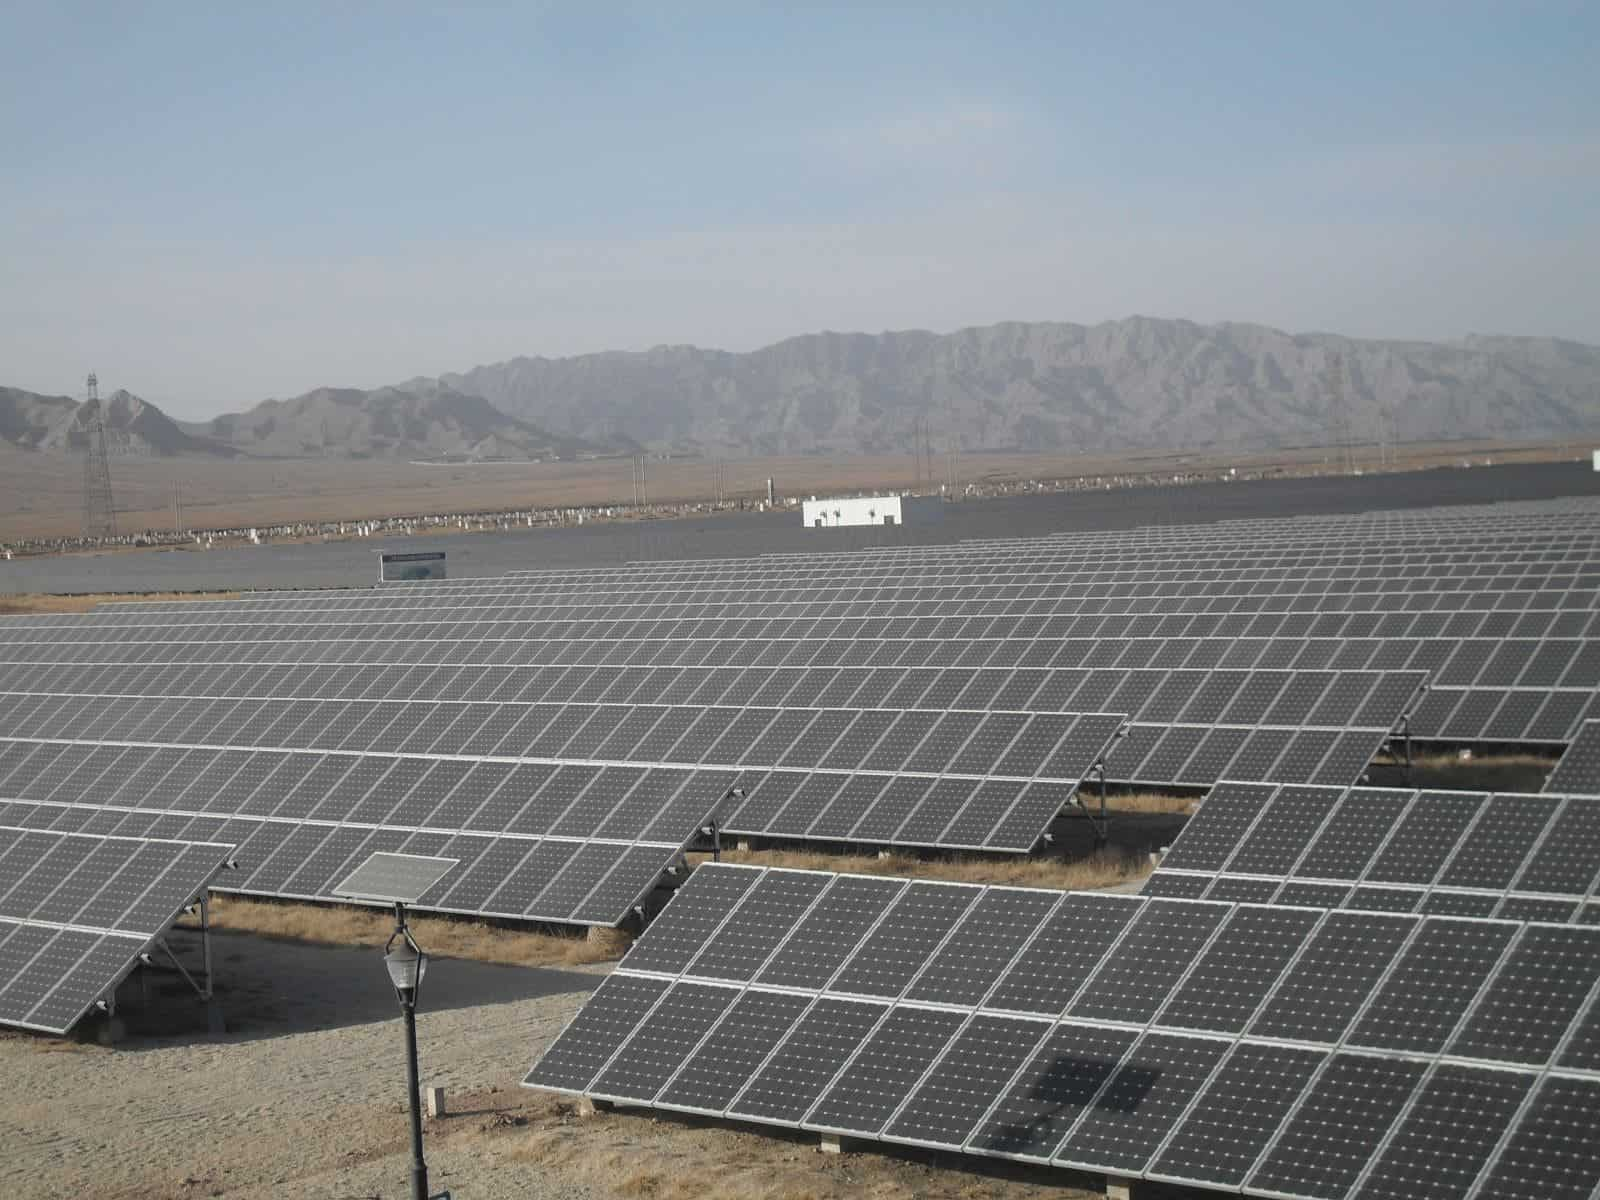 China will build the world's biggest solar farm: 6 million panels amounting to 2GW, stretched over 7,000 city blocks1600 x 1200 jpeg 277kB